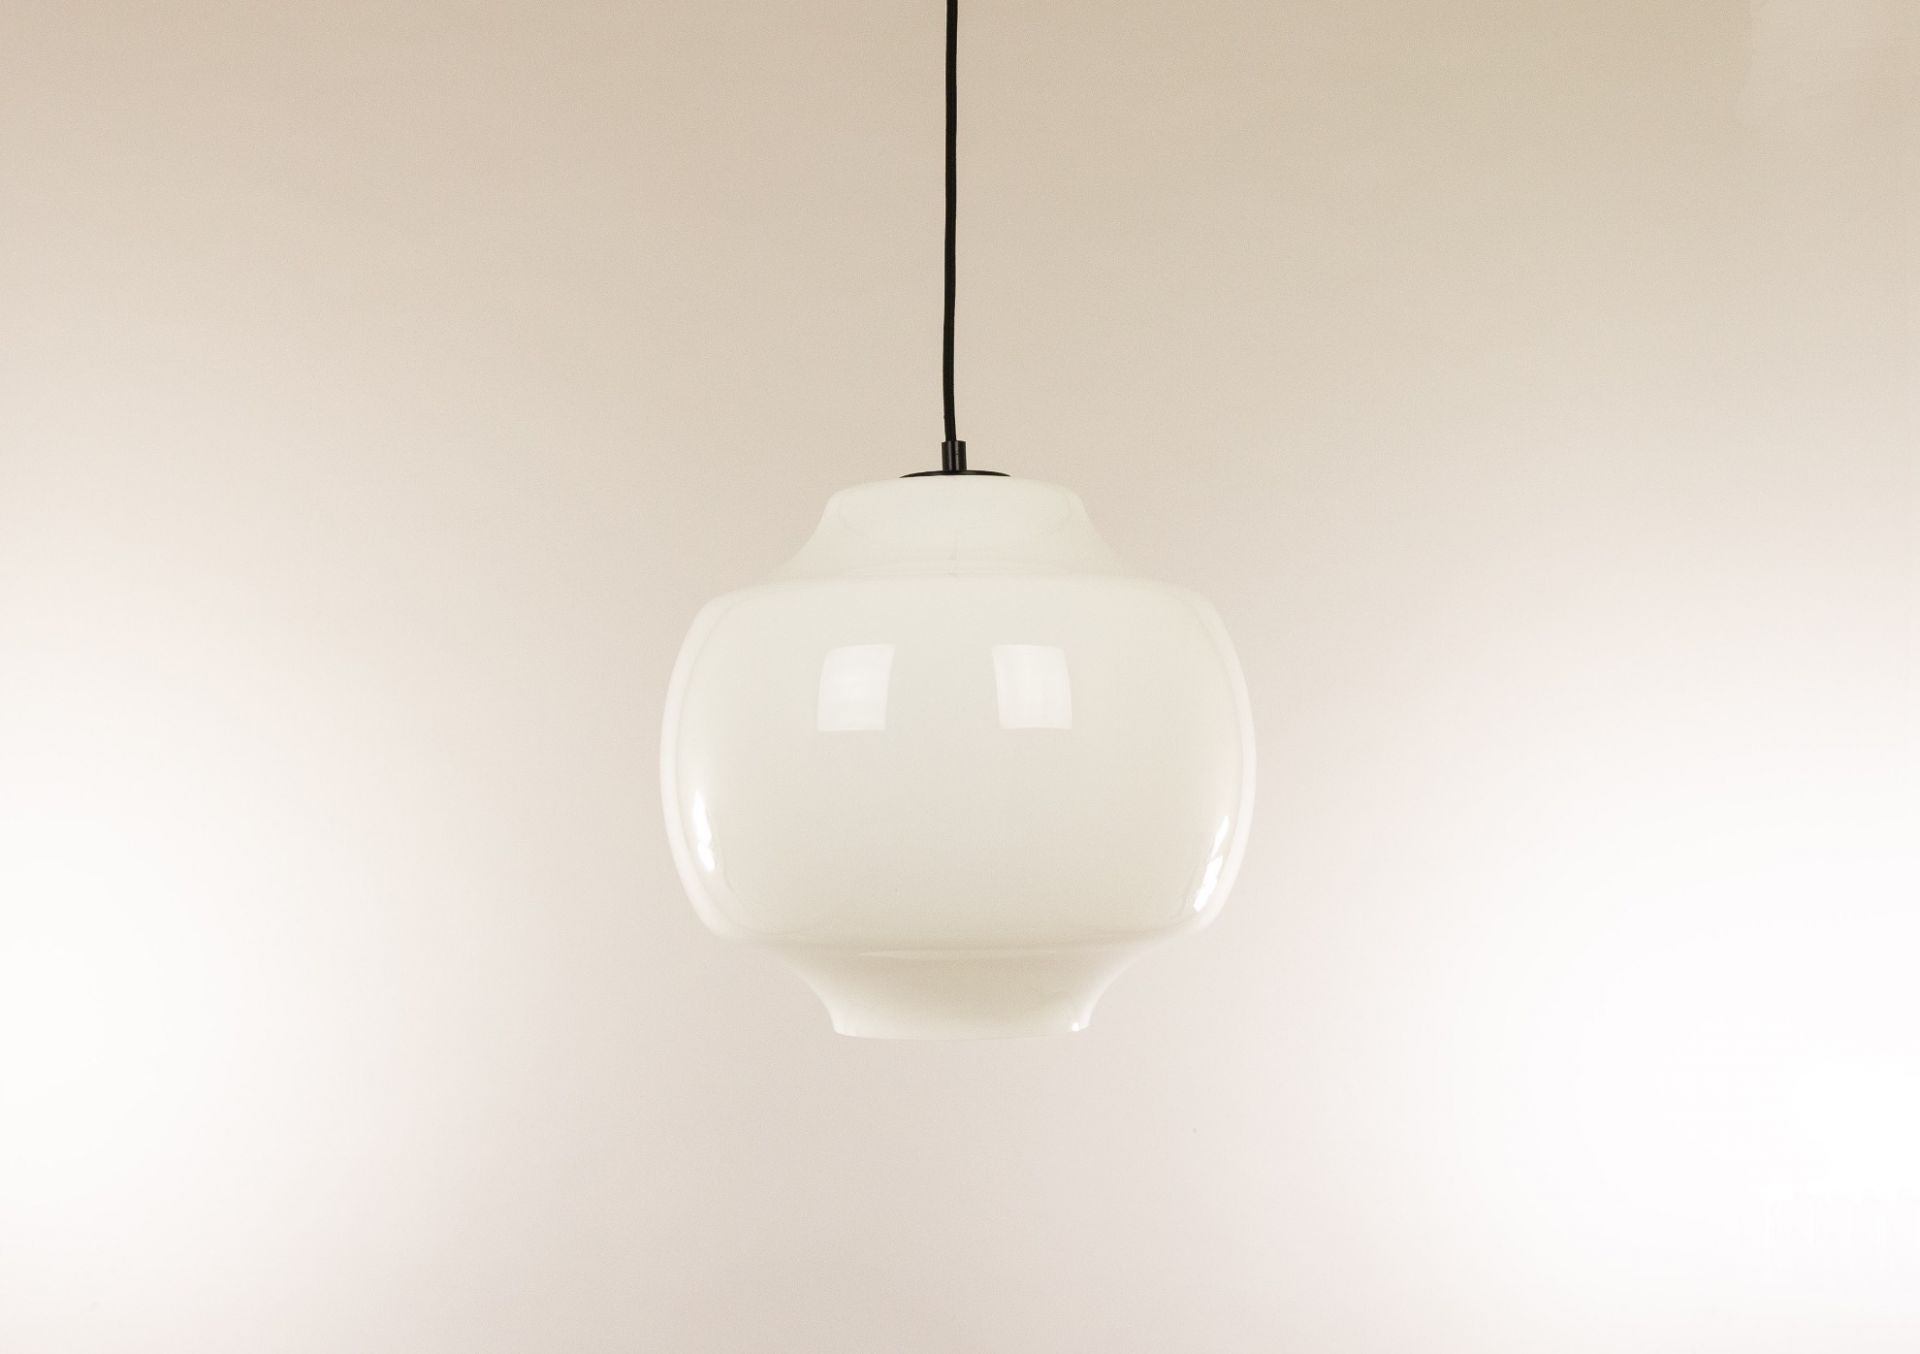 White glass pendant by Alessandro Pianon for Vistosi, 1960s